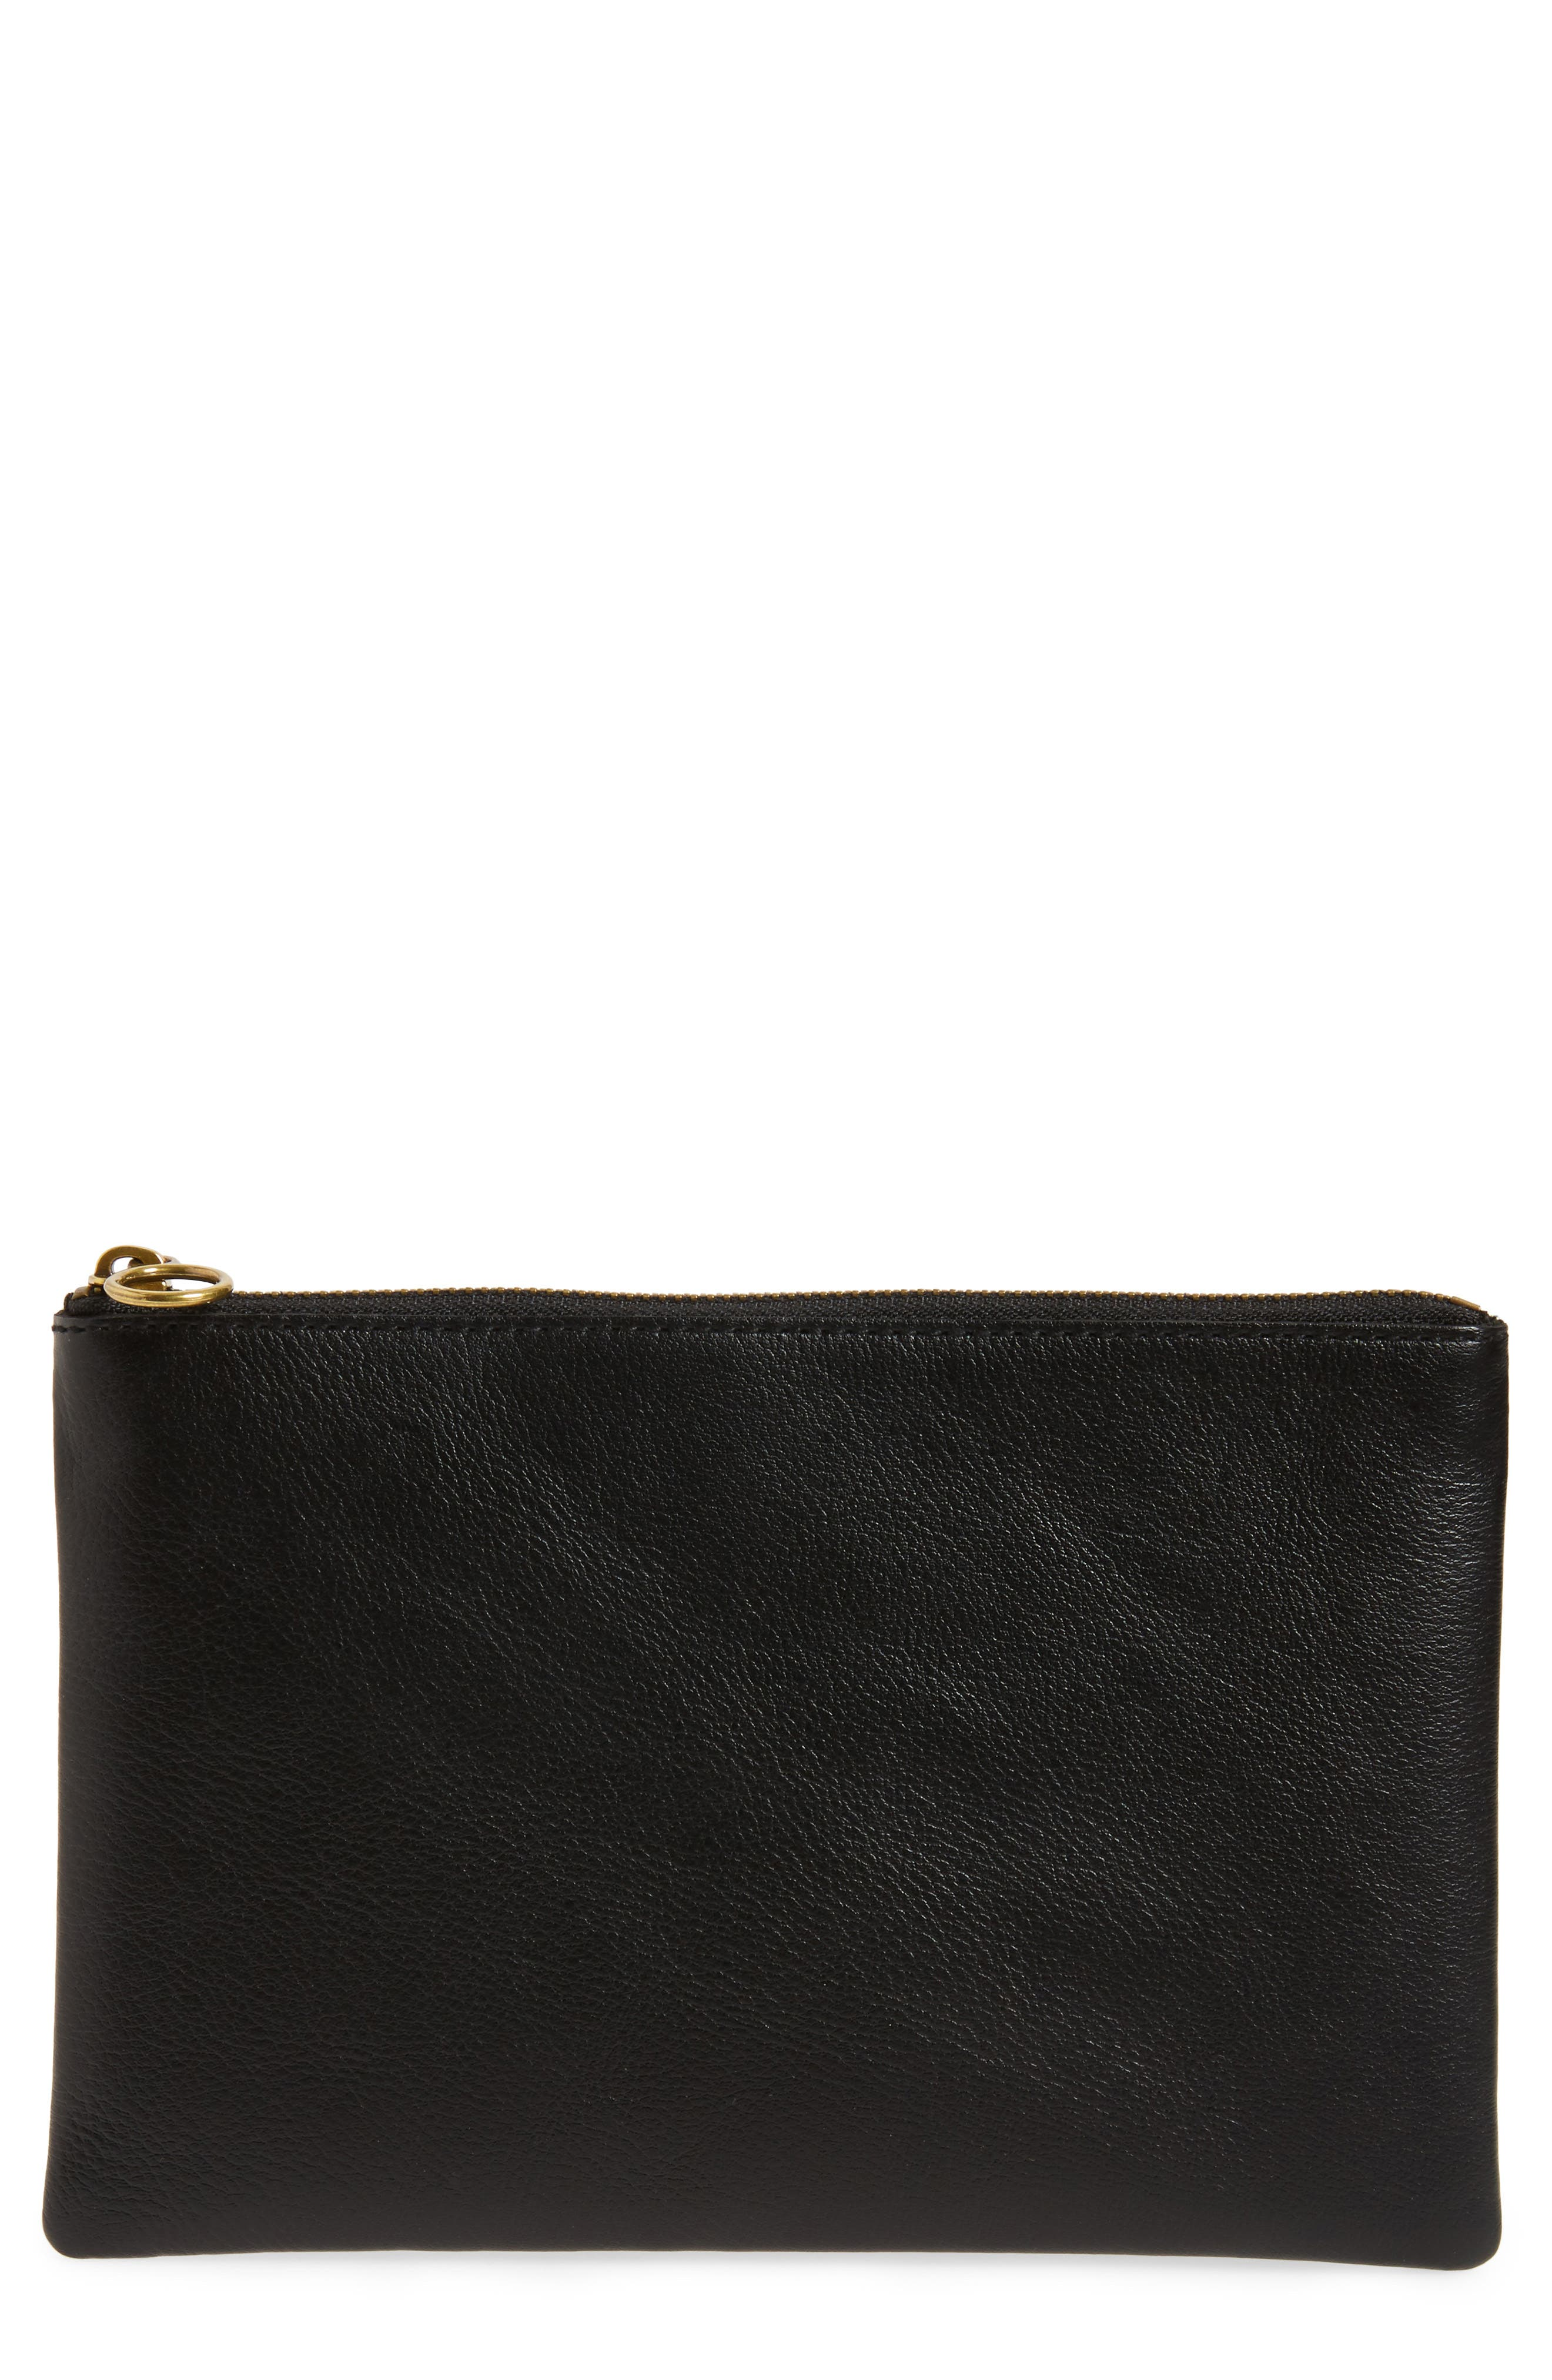 Alternate Image 1 Selected - Madewell The Leather Pouch Clutch